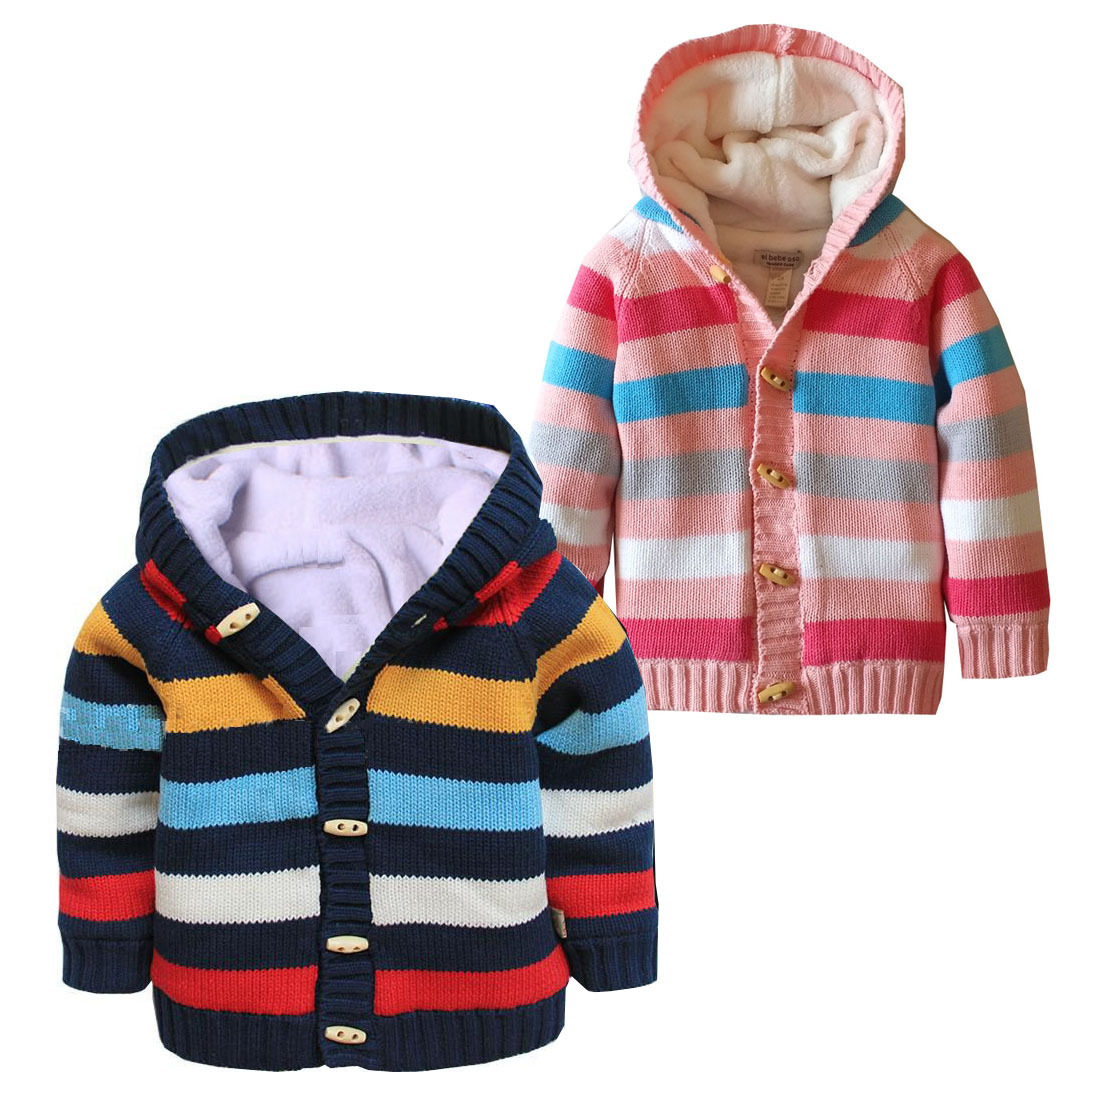 New 2017 Winter Kids Clothes Baby Girls Boys Hooded Knitted Sweater Jackets Children Plus Velvet Knitwear Cardigan Coat t100 children sweater winter wool girl child cartoon thick knitted girls cardigan warm sweater long sleeve toddler cardigan